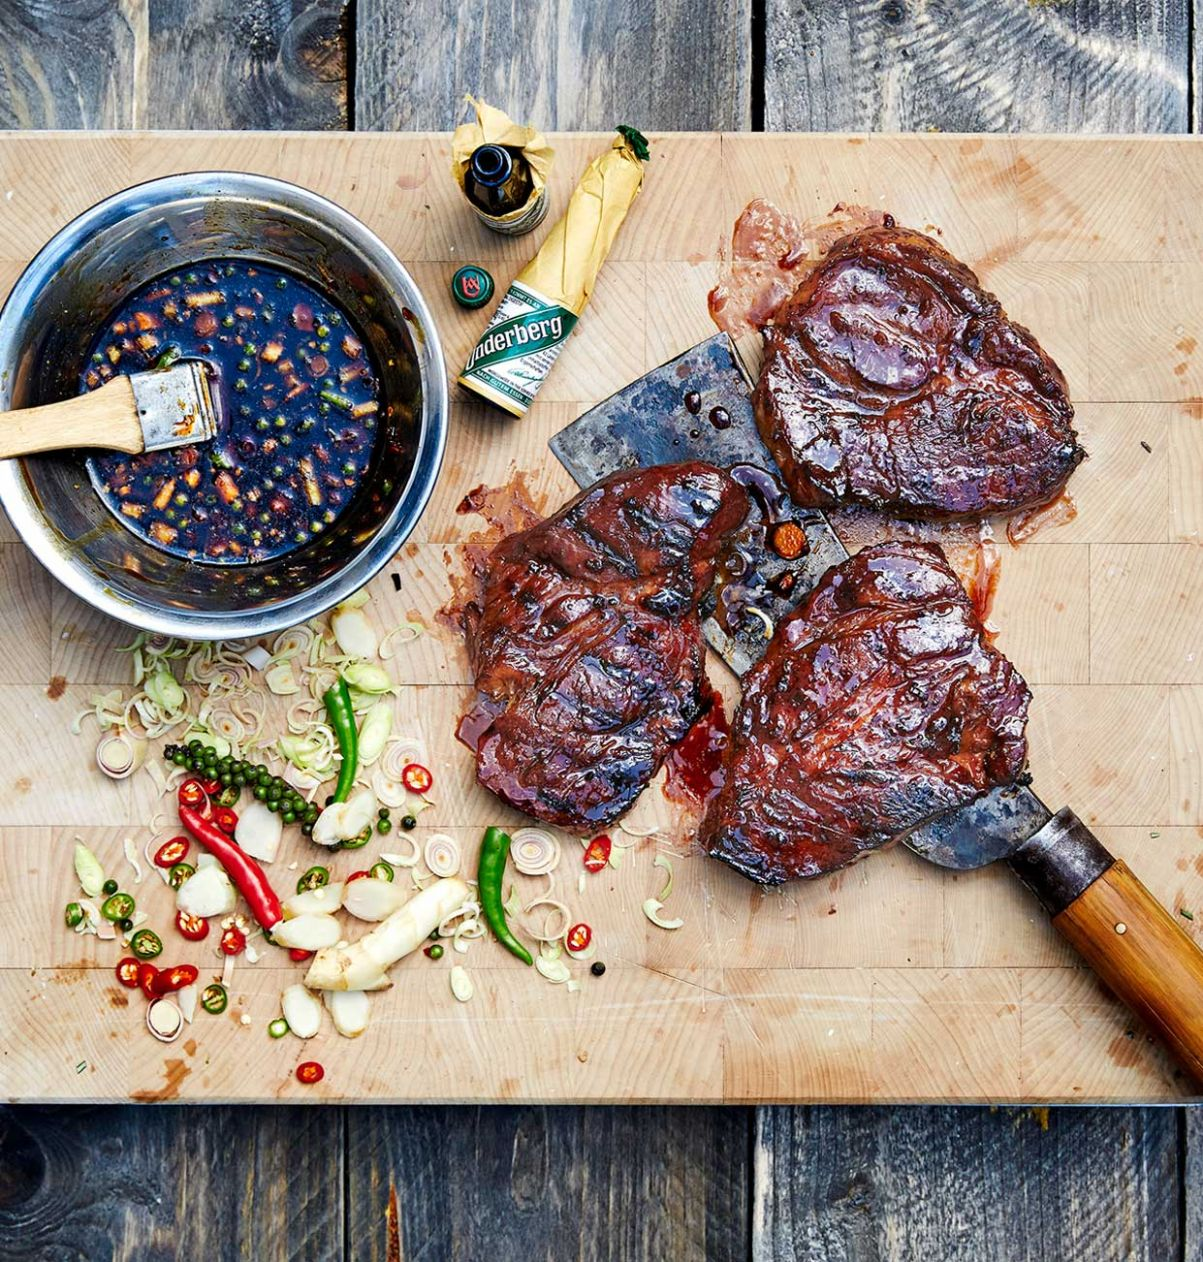 Grilled pork neck steaks marinated in Underberg - Underberg English